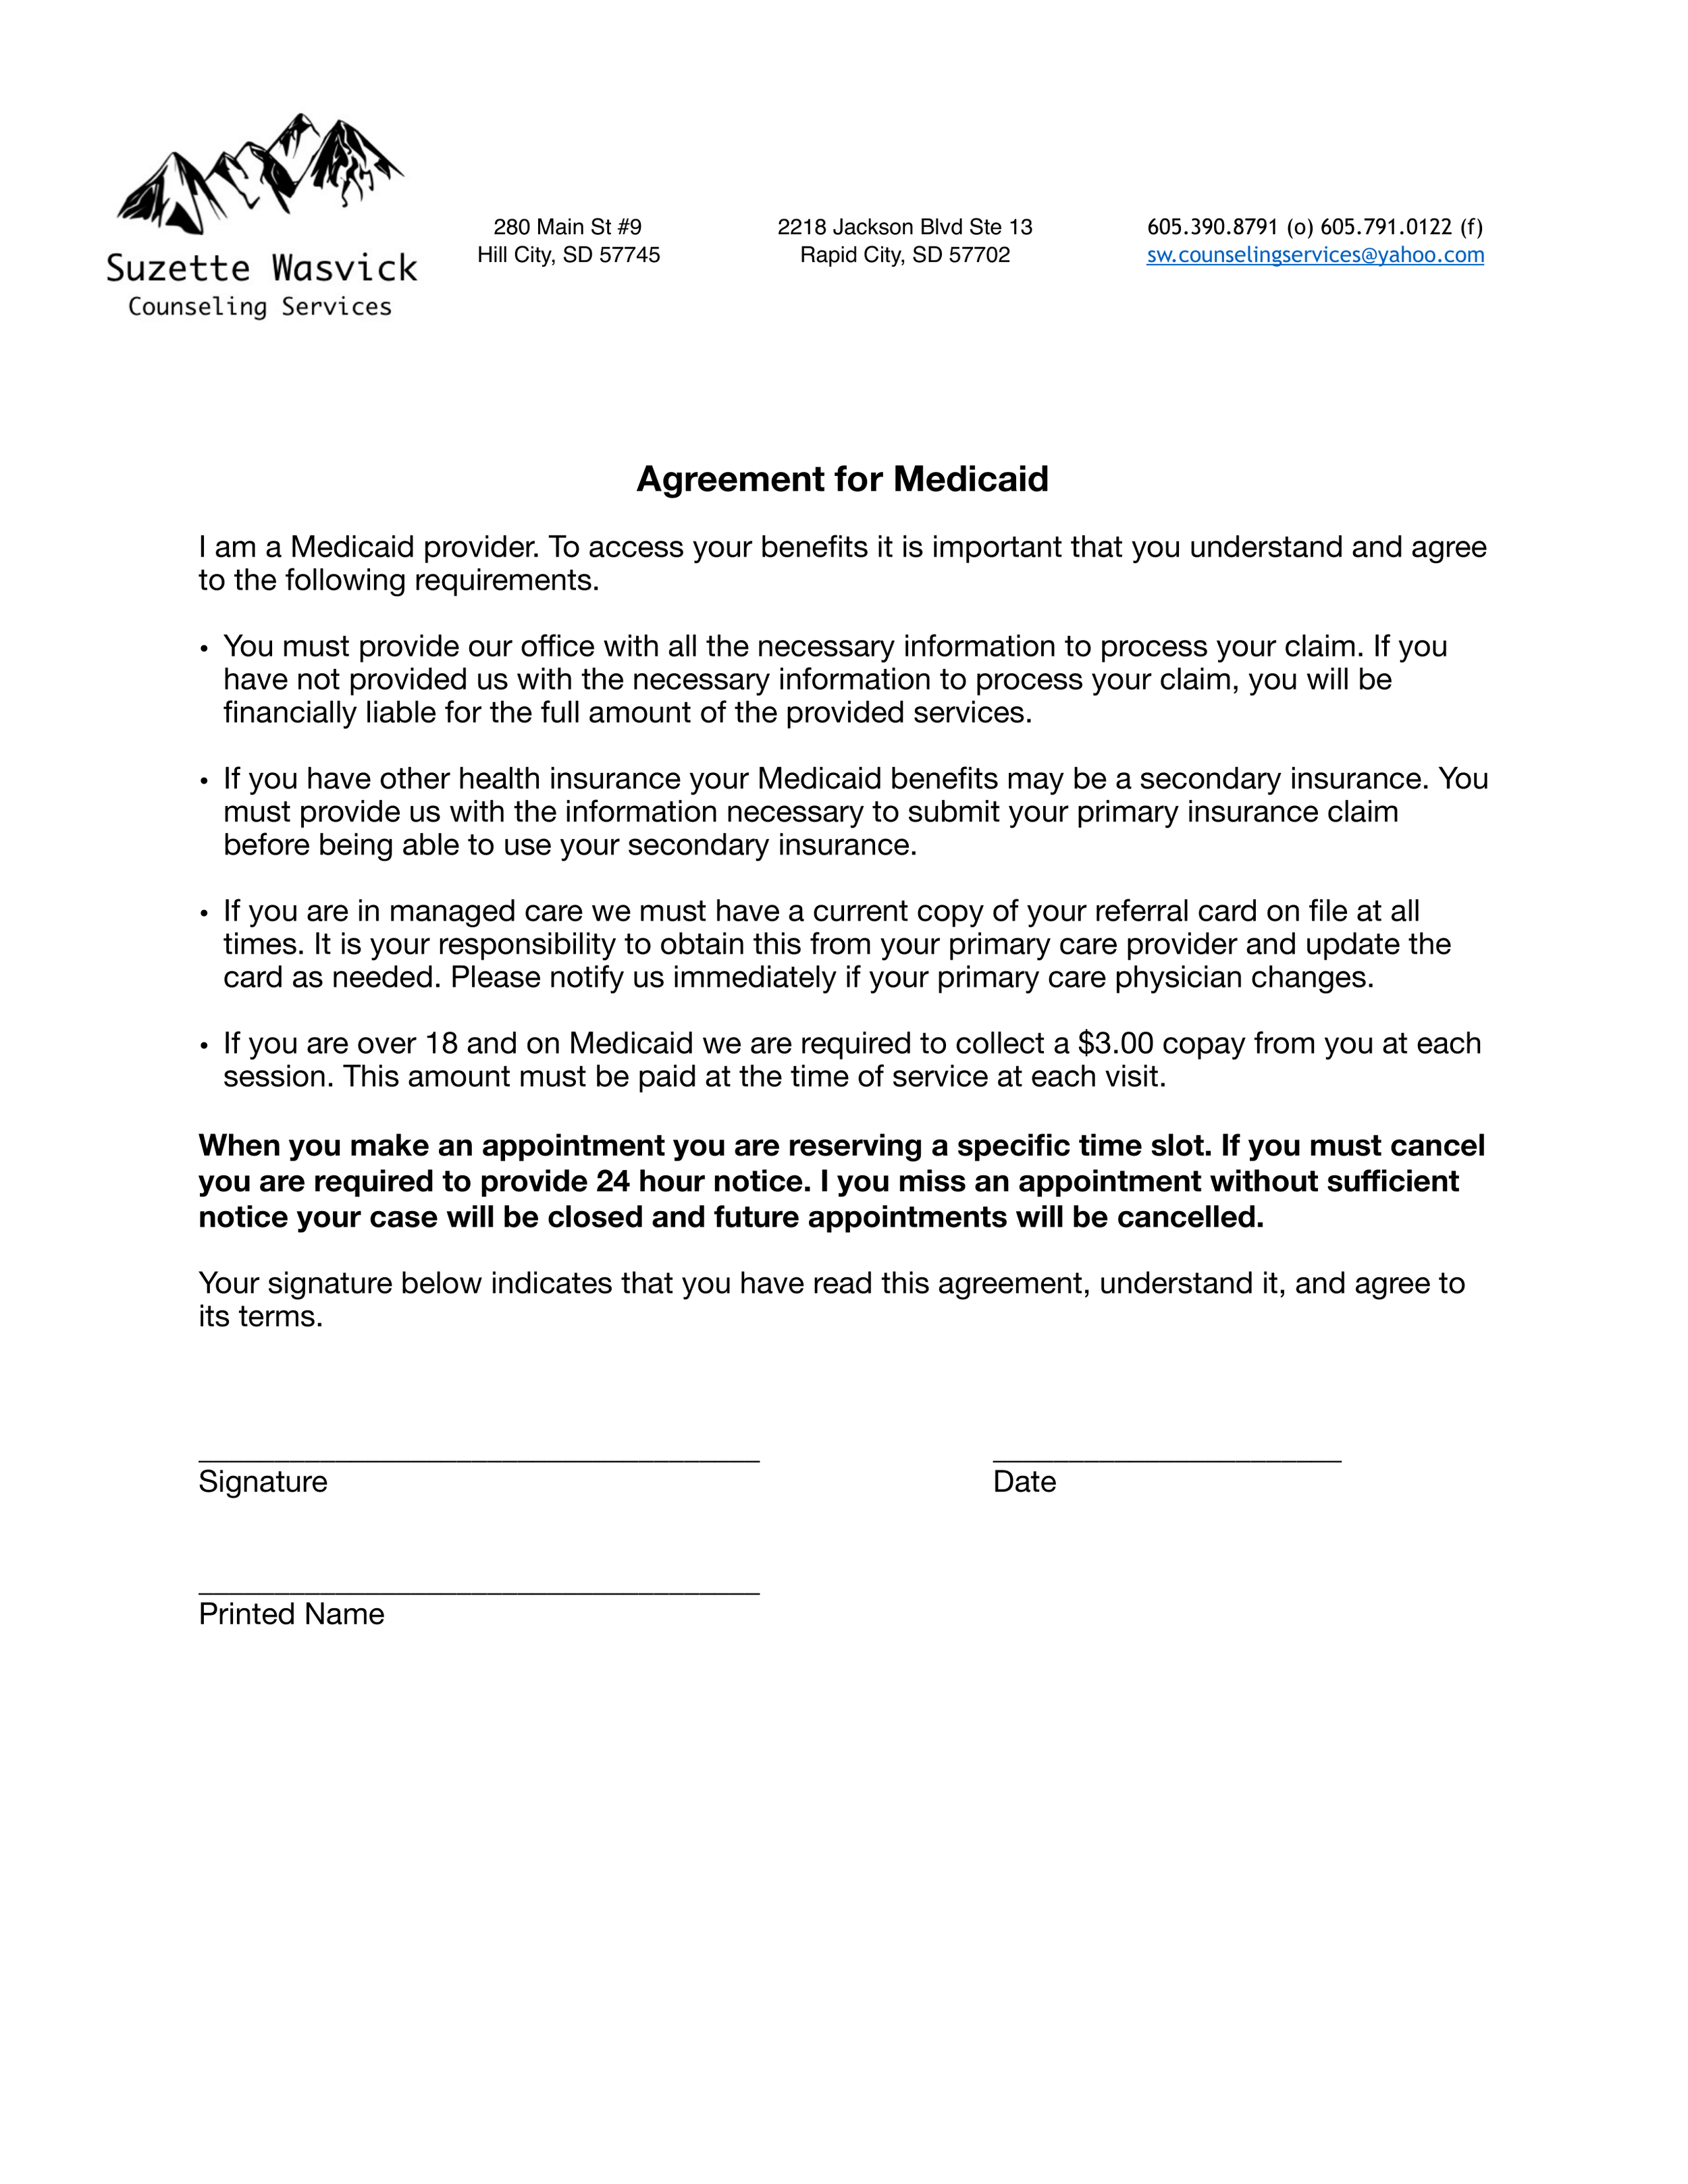 Agreement for Medicaid.png